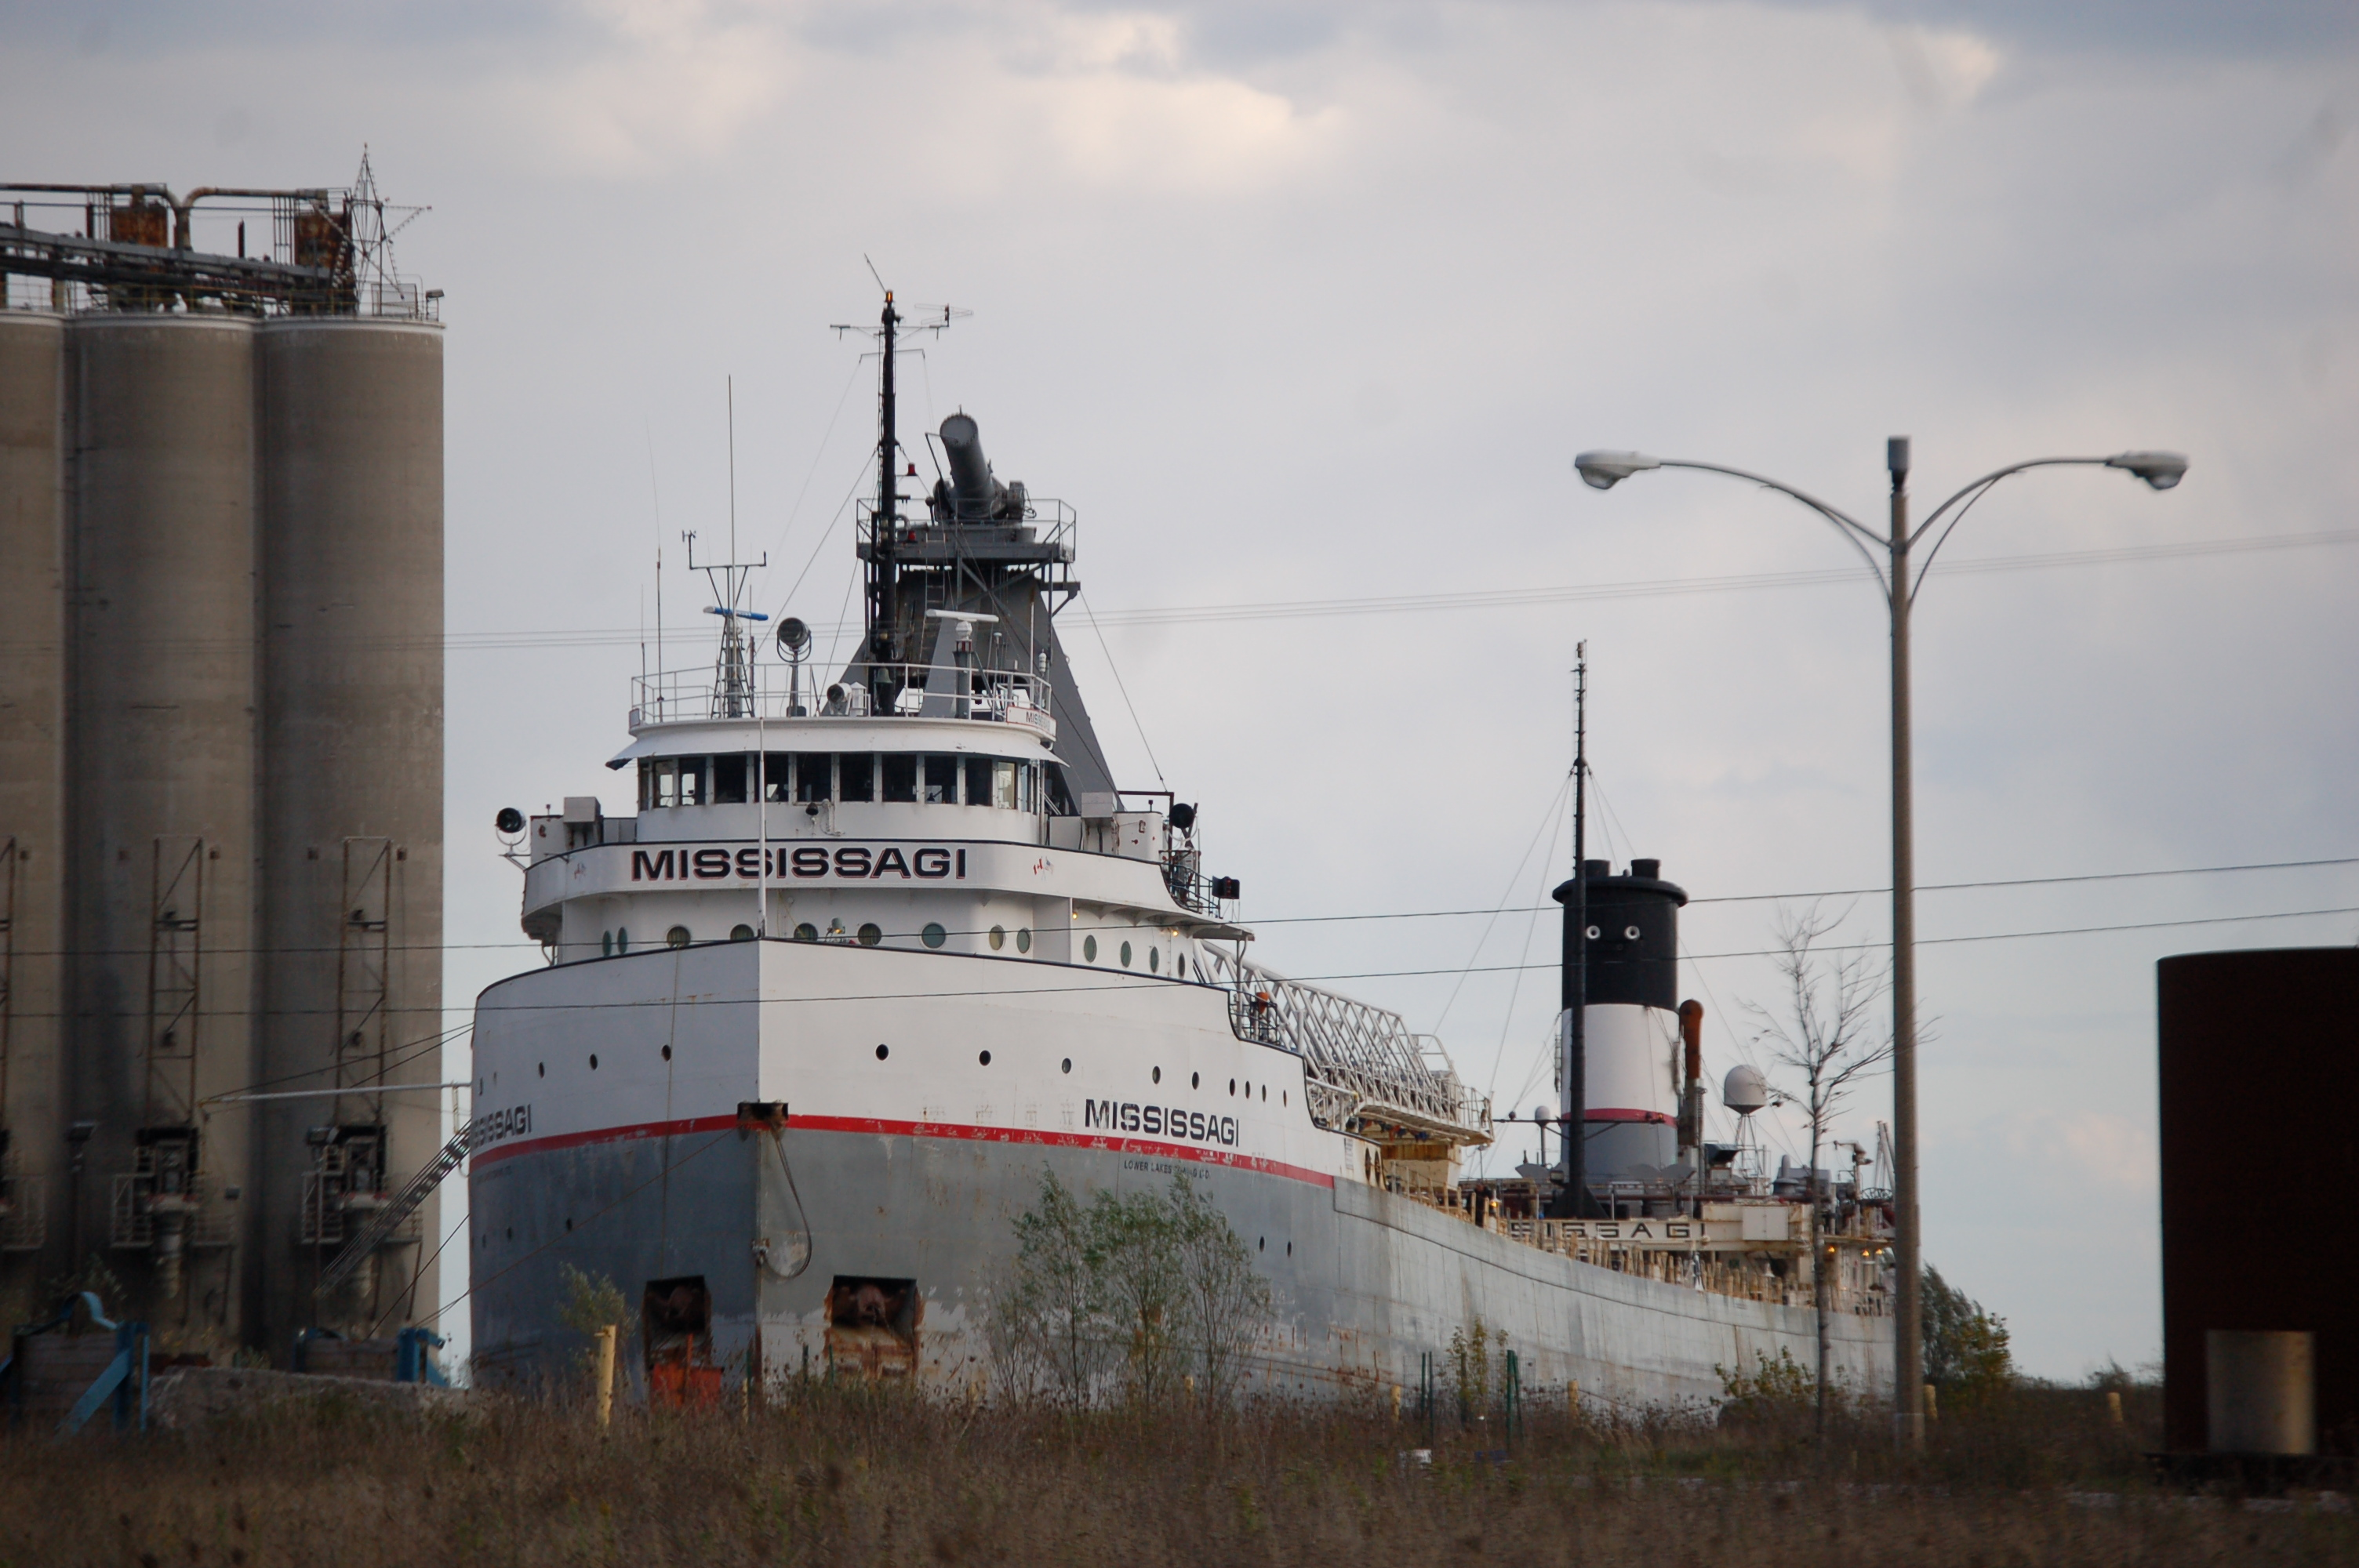 Huron Portland Cement : Things to see and do in alpena michigan travel the